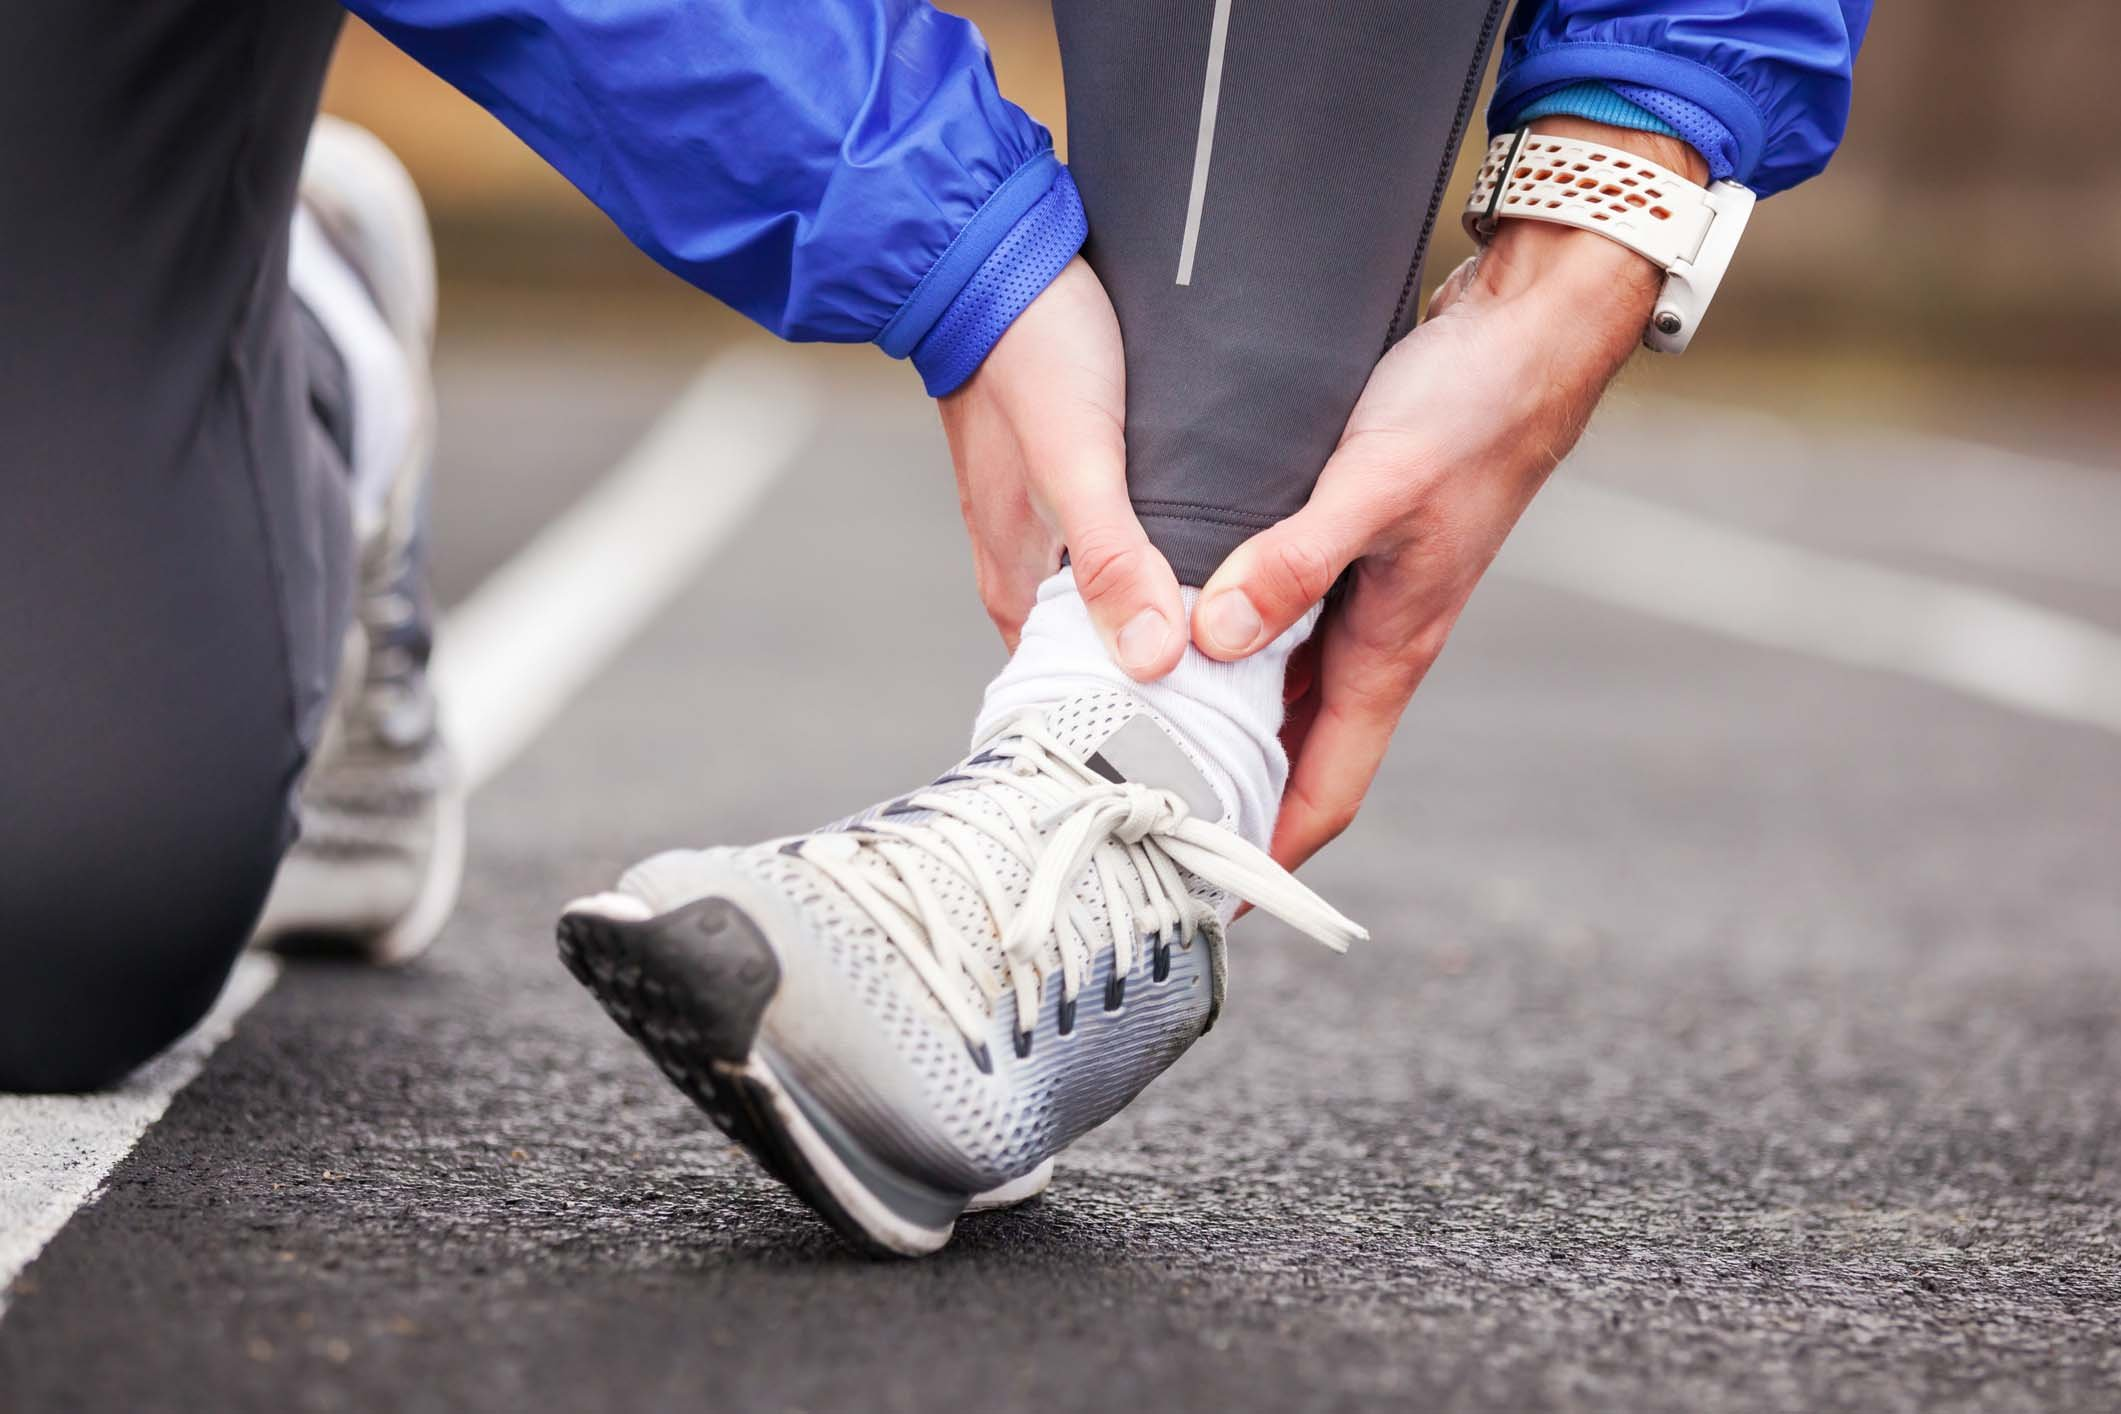 A sprain is damage or a tear in a ligament.